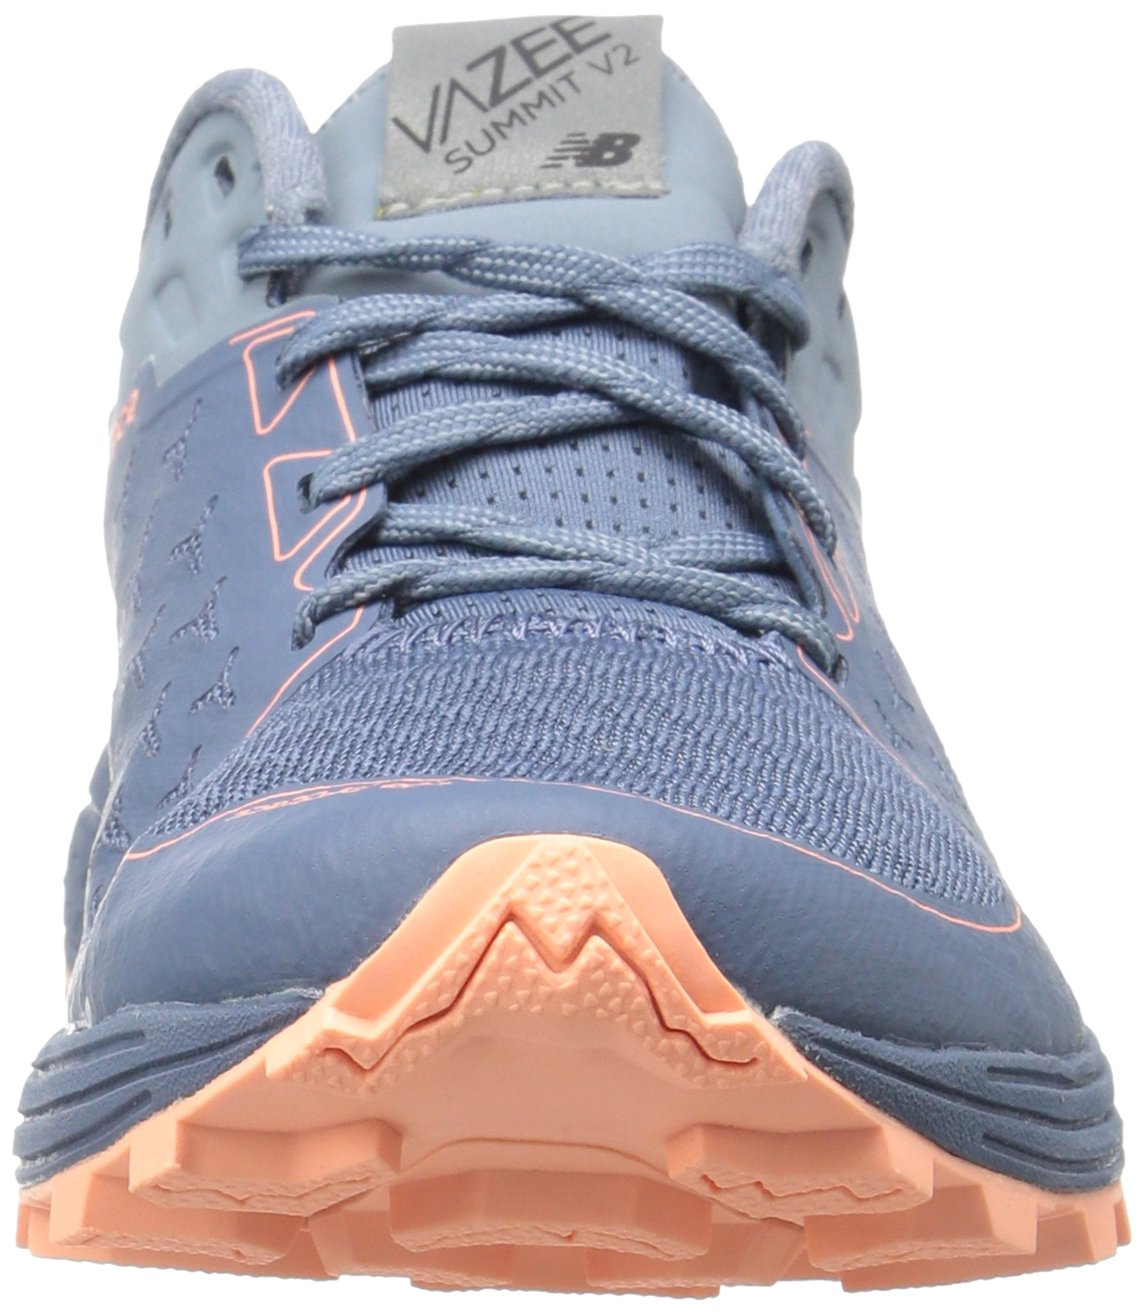 New Balance Women's Vazee Summit V2 Running 5.5 Shoe Trail Runner B01LZL83B1 5.5 Running B(M) US|Deep Porcelain Blue/Reflection 6e5997